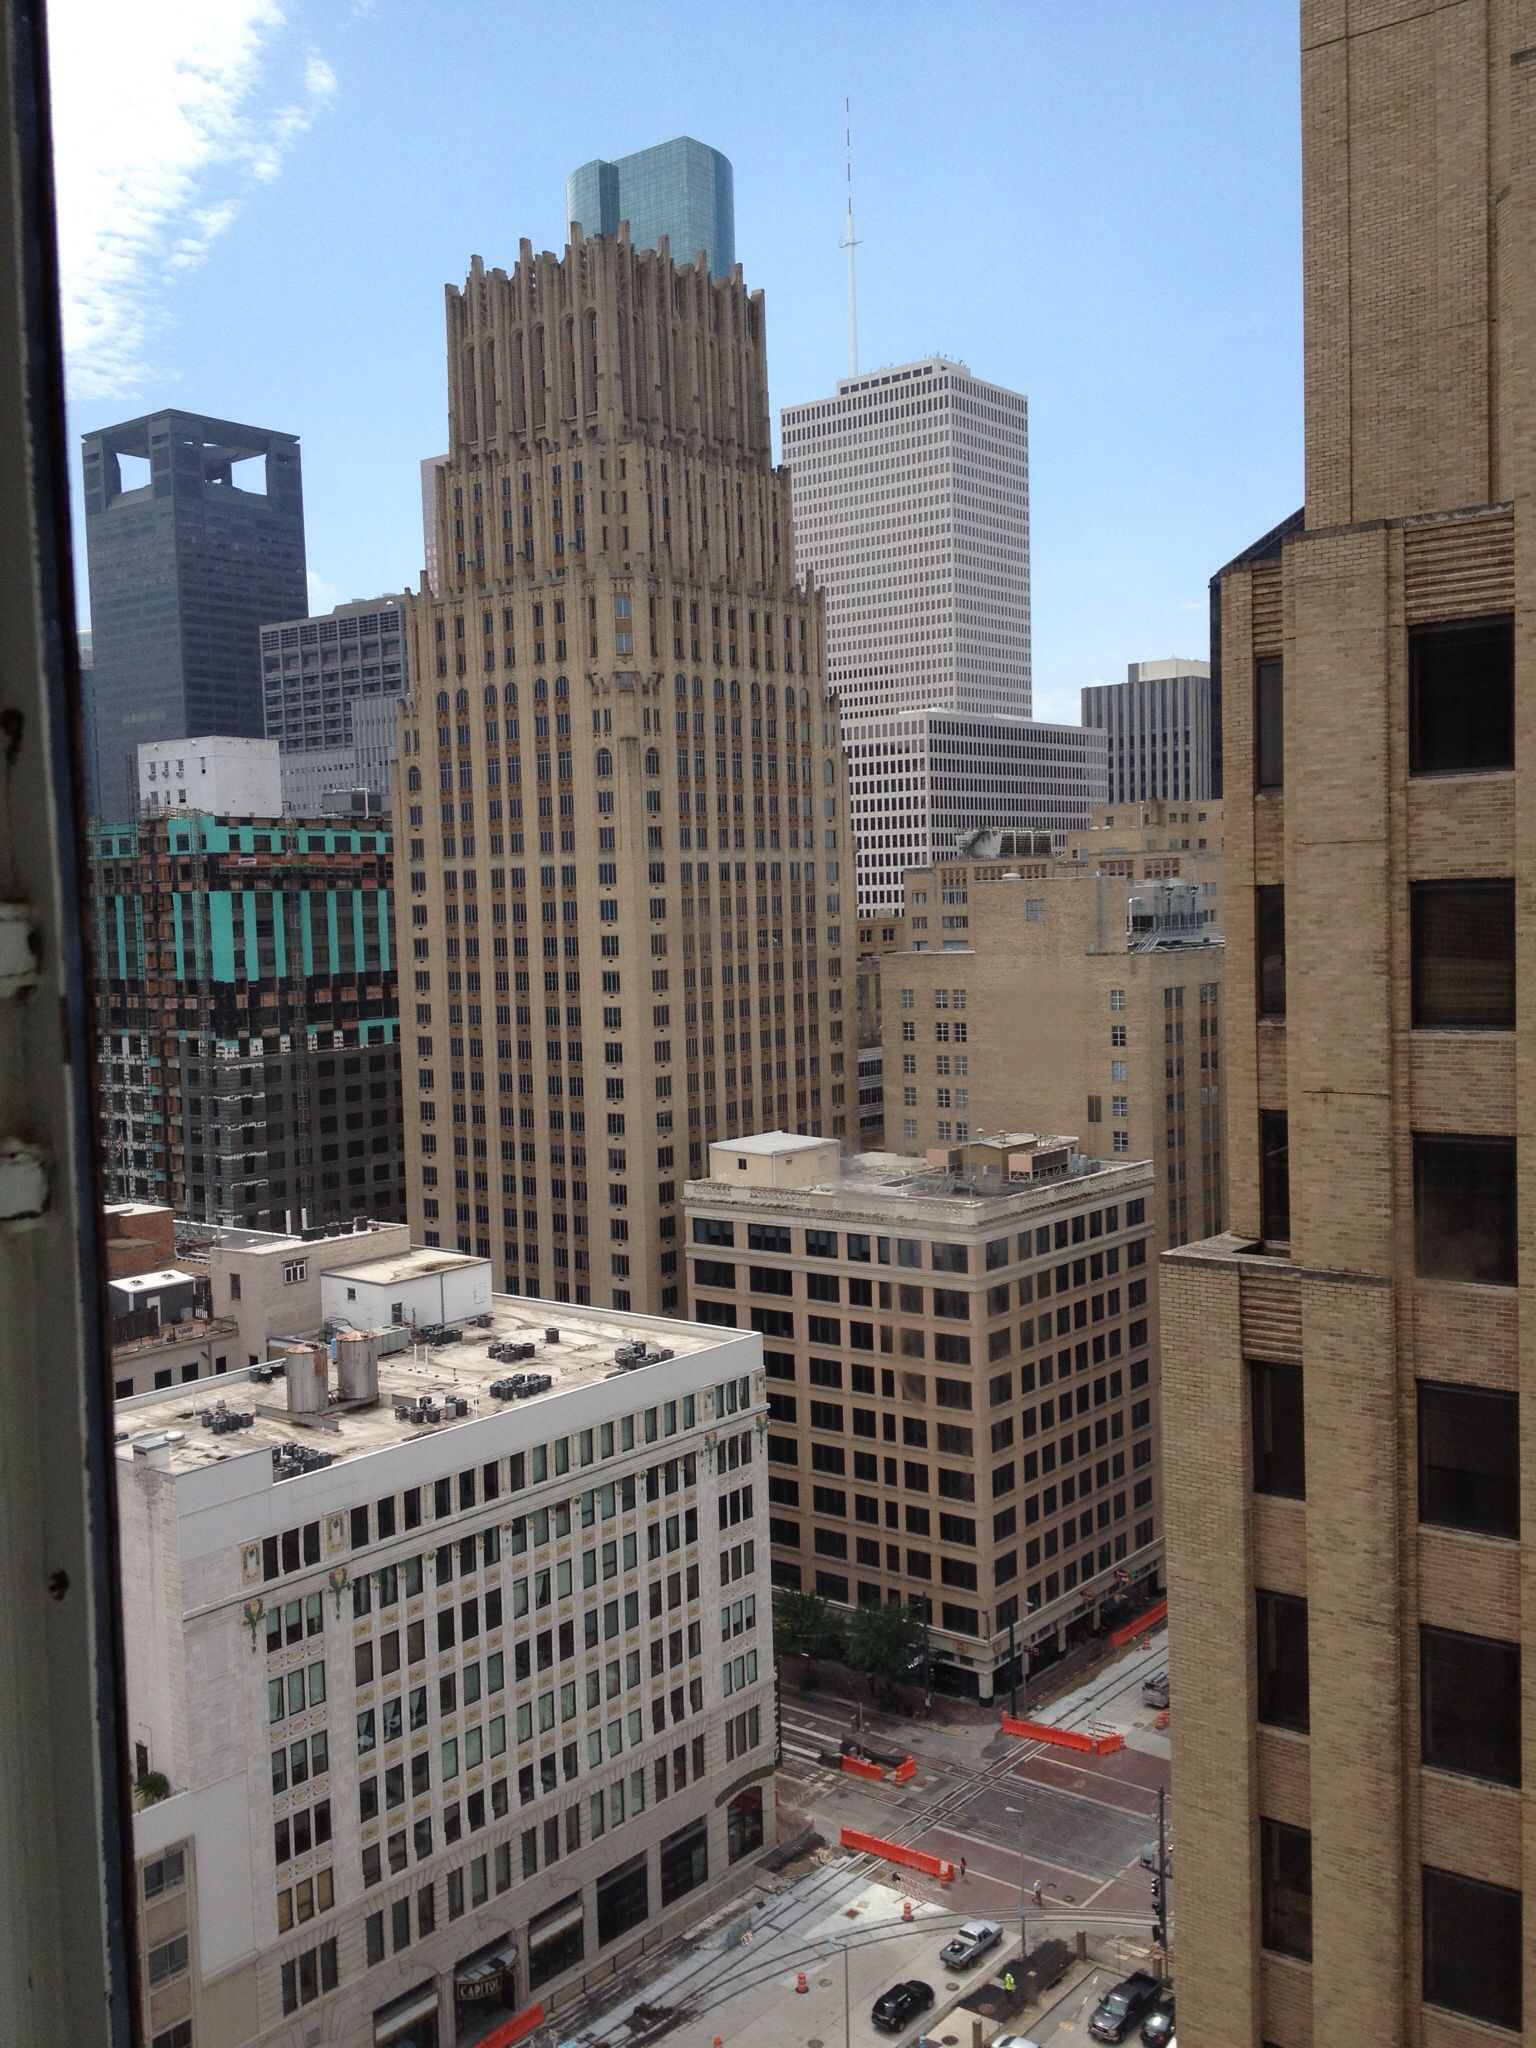 View from the Magnolia hotel Houston. August 2013. Honeymoon